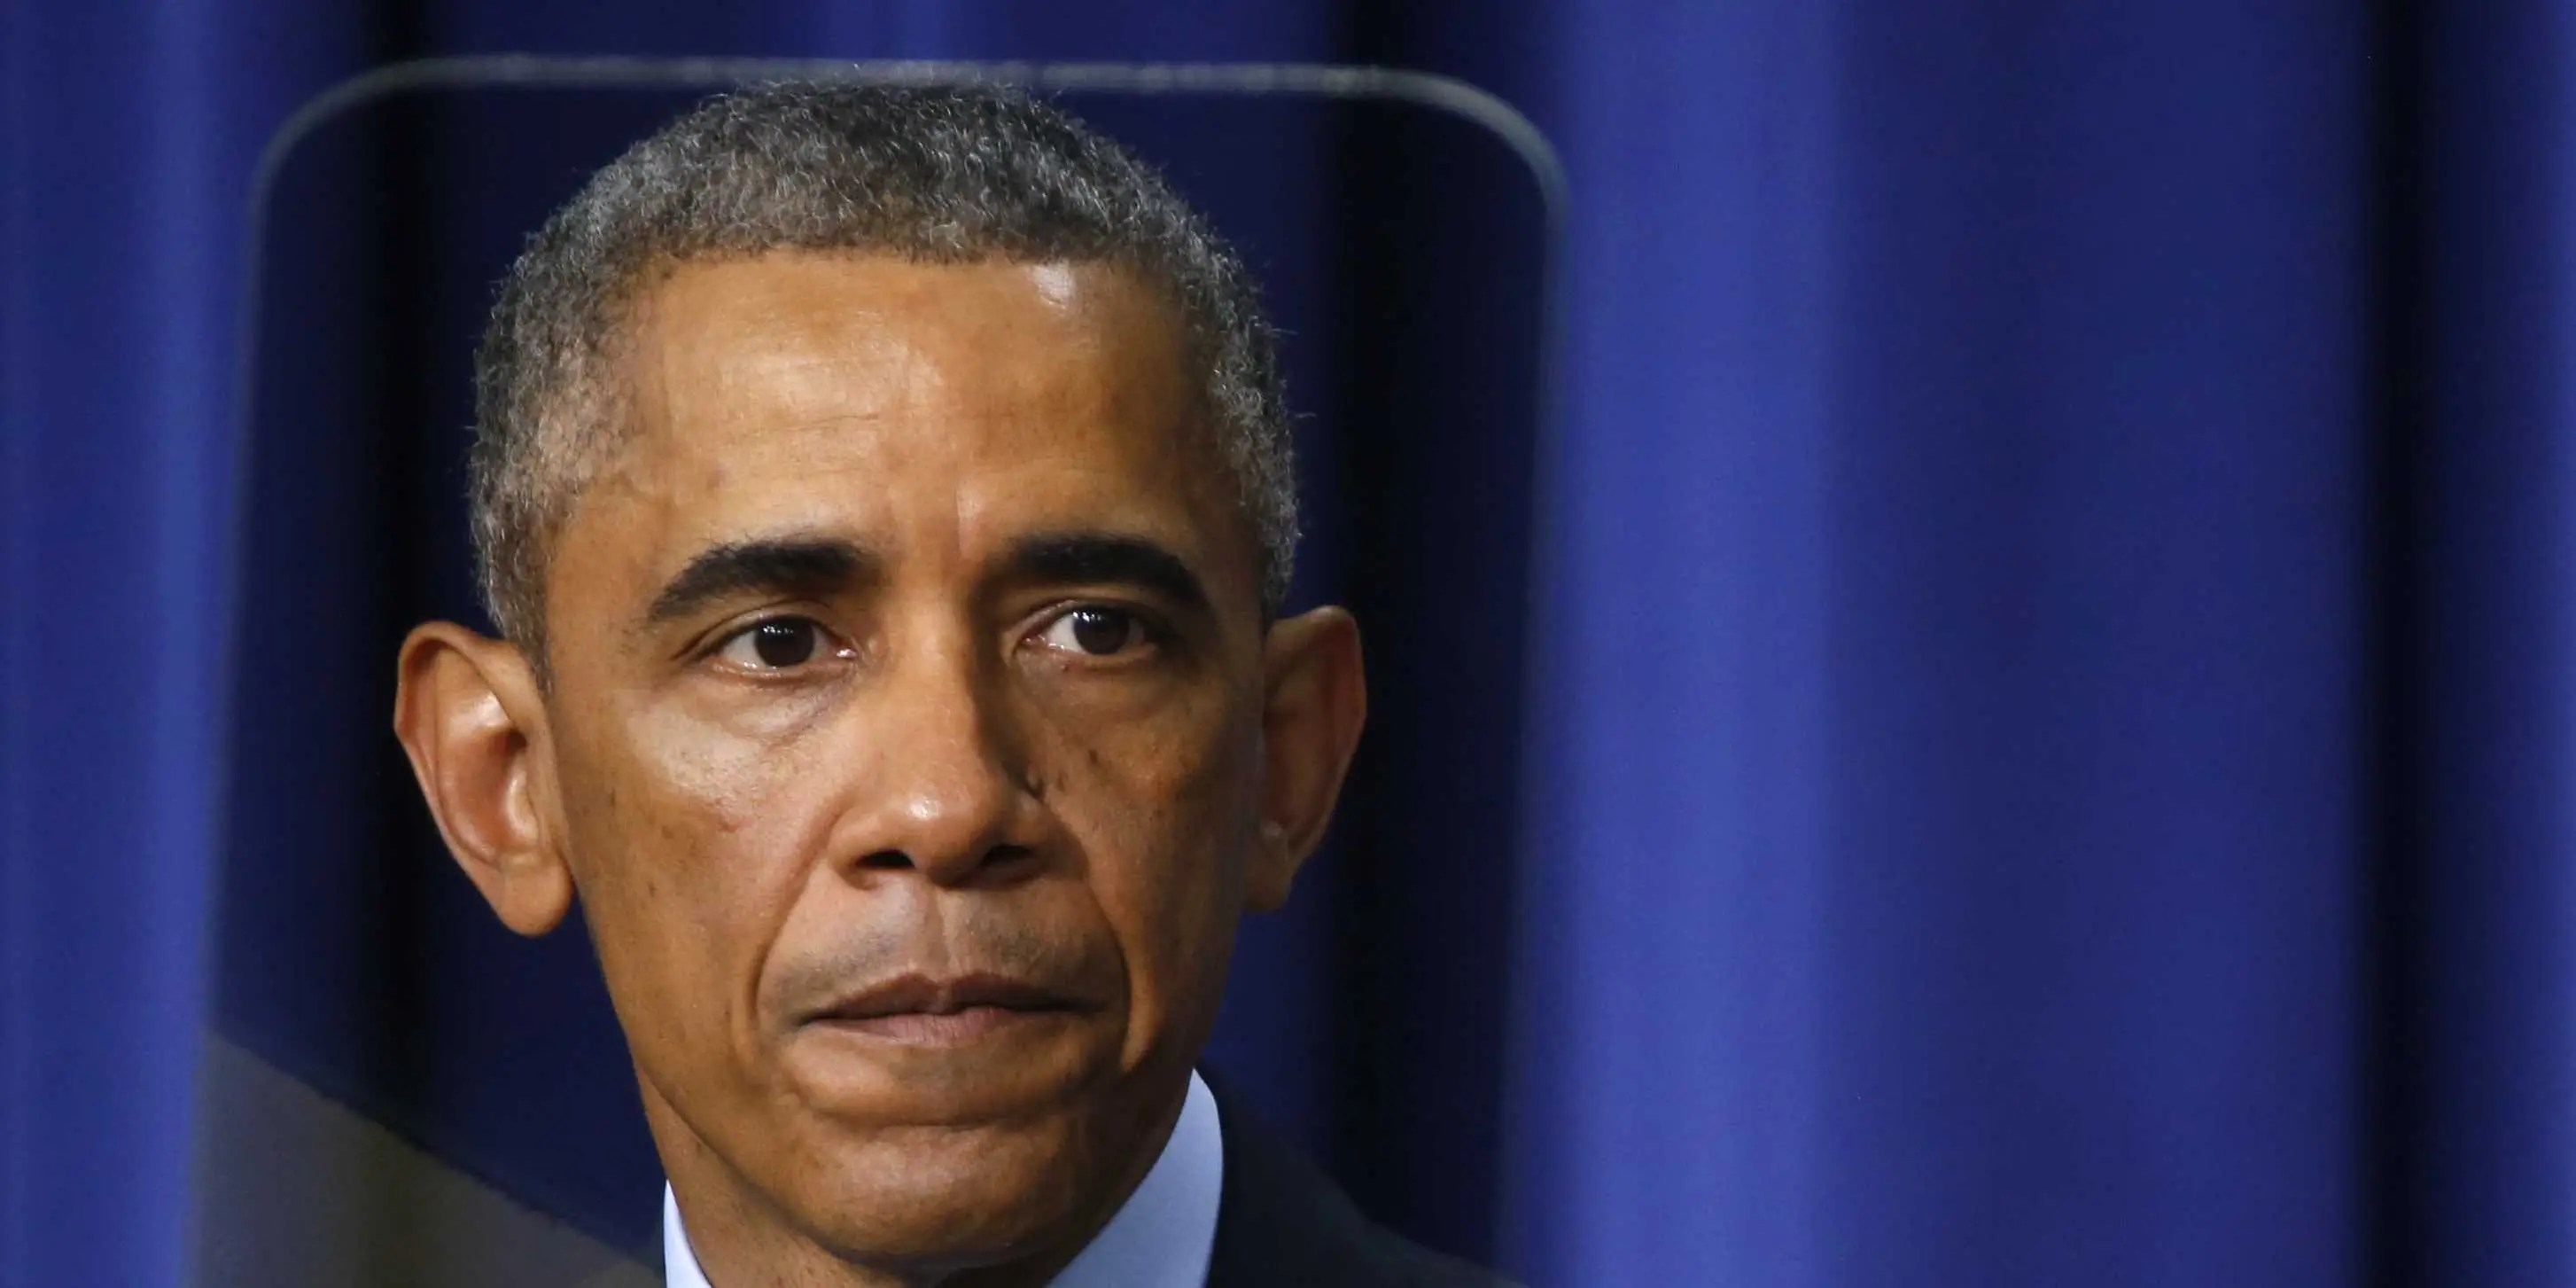 Obama faces Syria peace talks questions  Business Insider